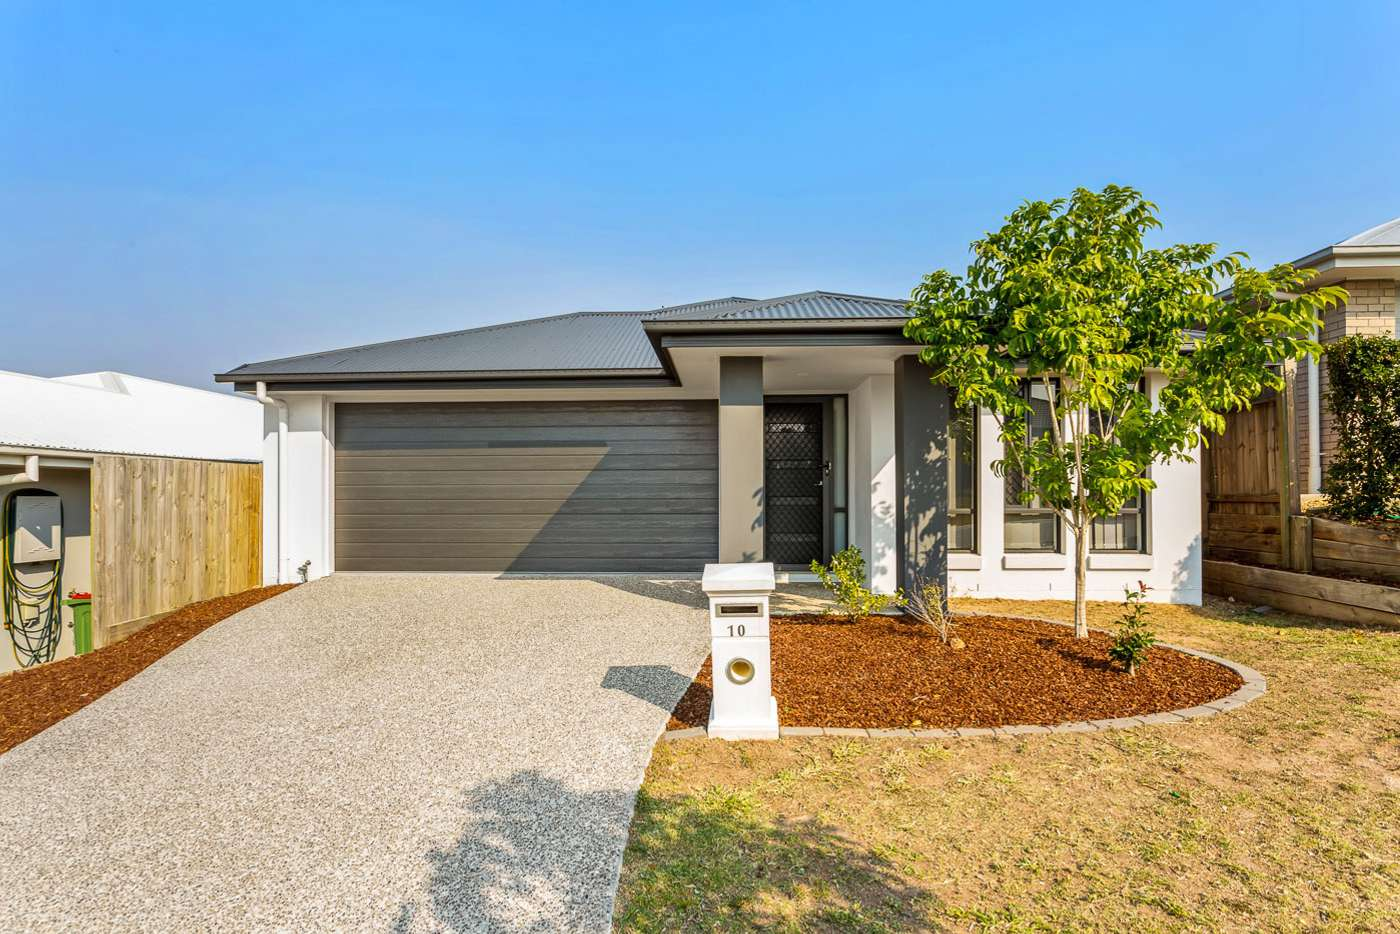 Main view of Homely house listing, 10 Chalk St, Yarrabilba QLD 4207